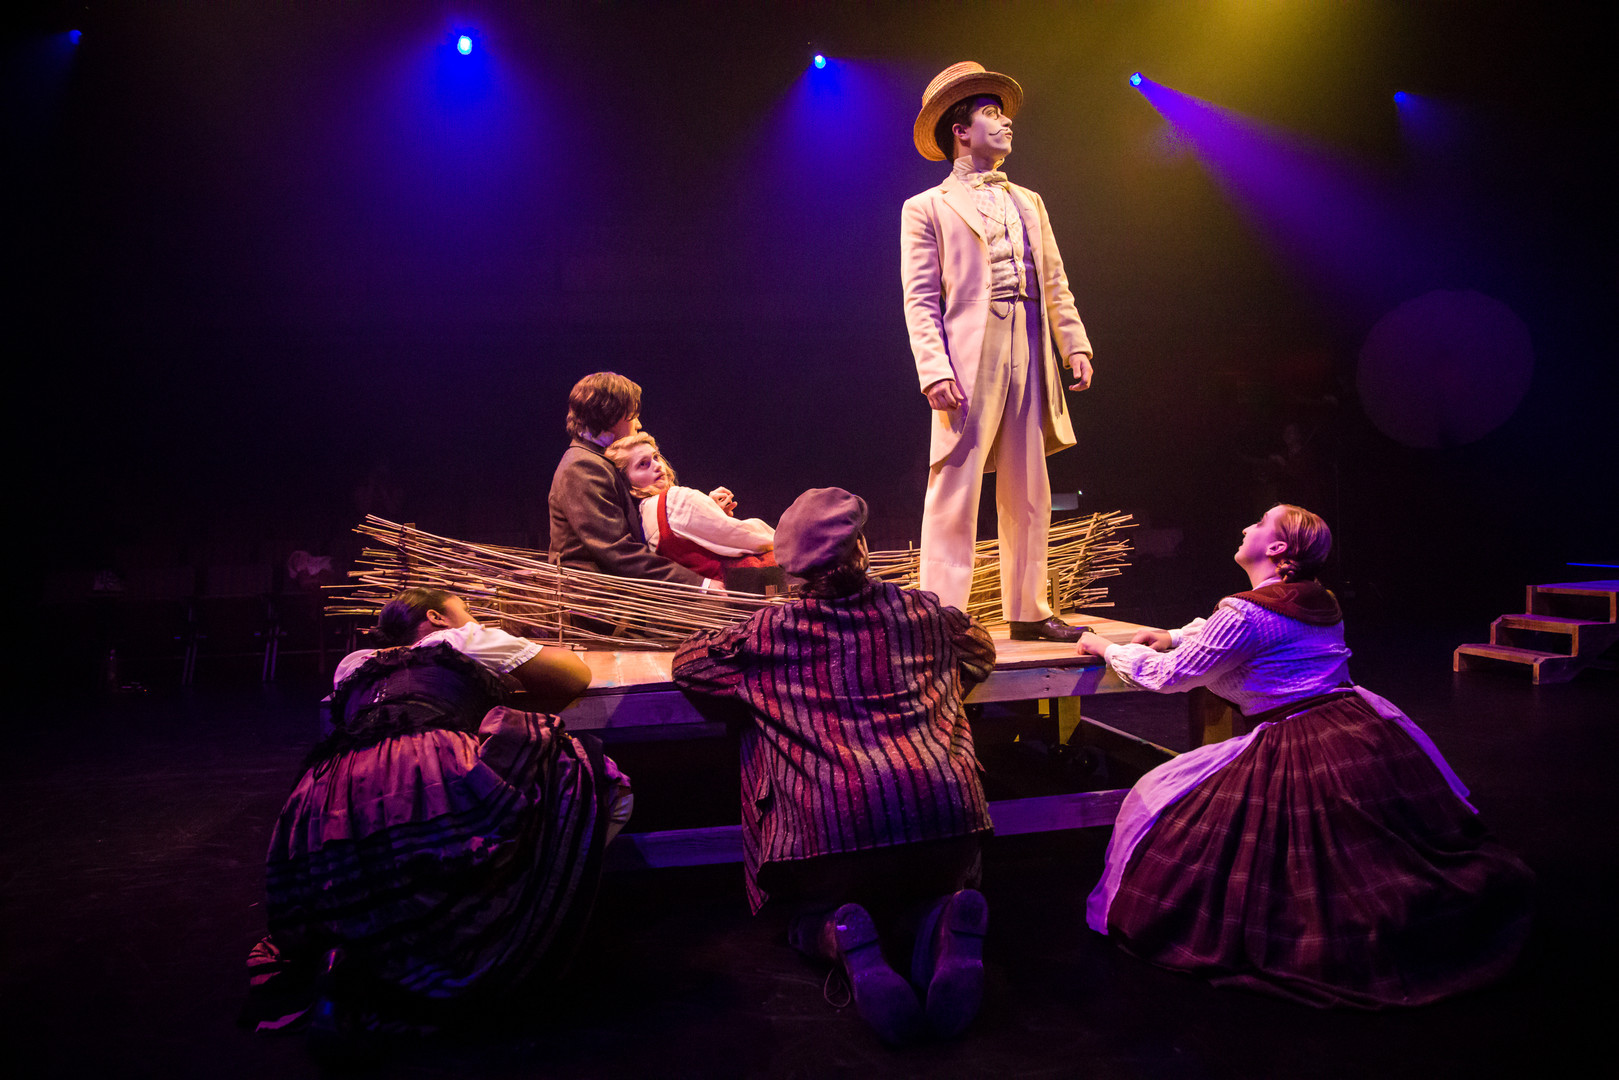 All in the Golden Afternoon-Jim Lawrenson as the White Rabbit, Eliza Shea as Alice and Luke Antony Neville as Charles Dodgson-BAM